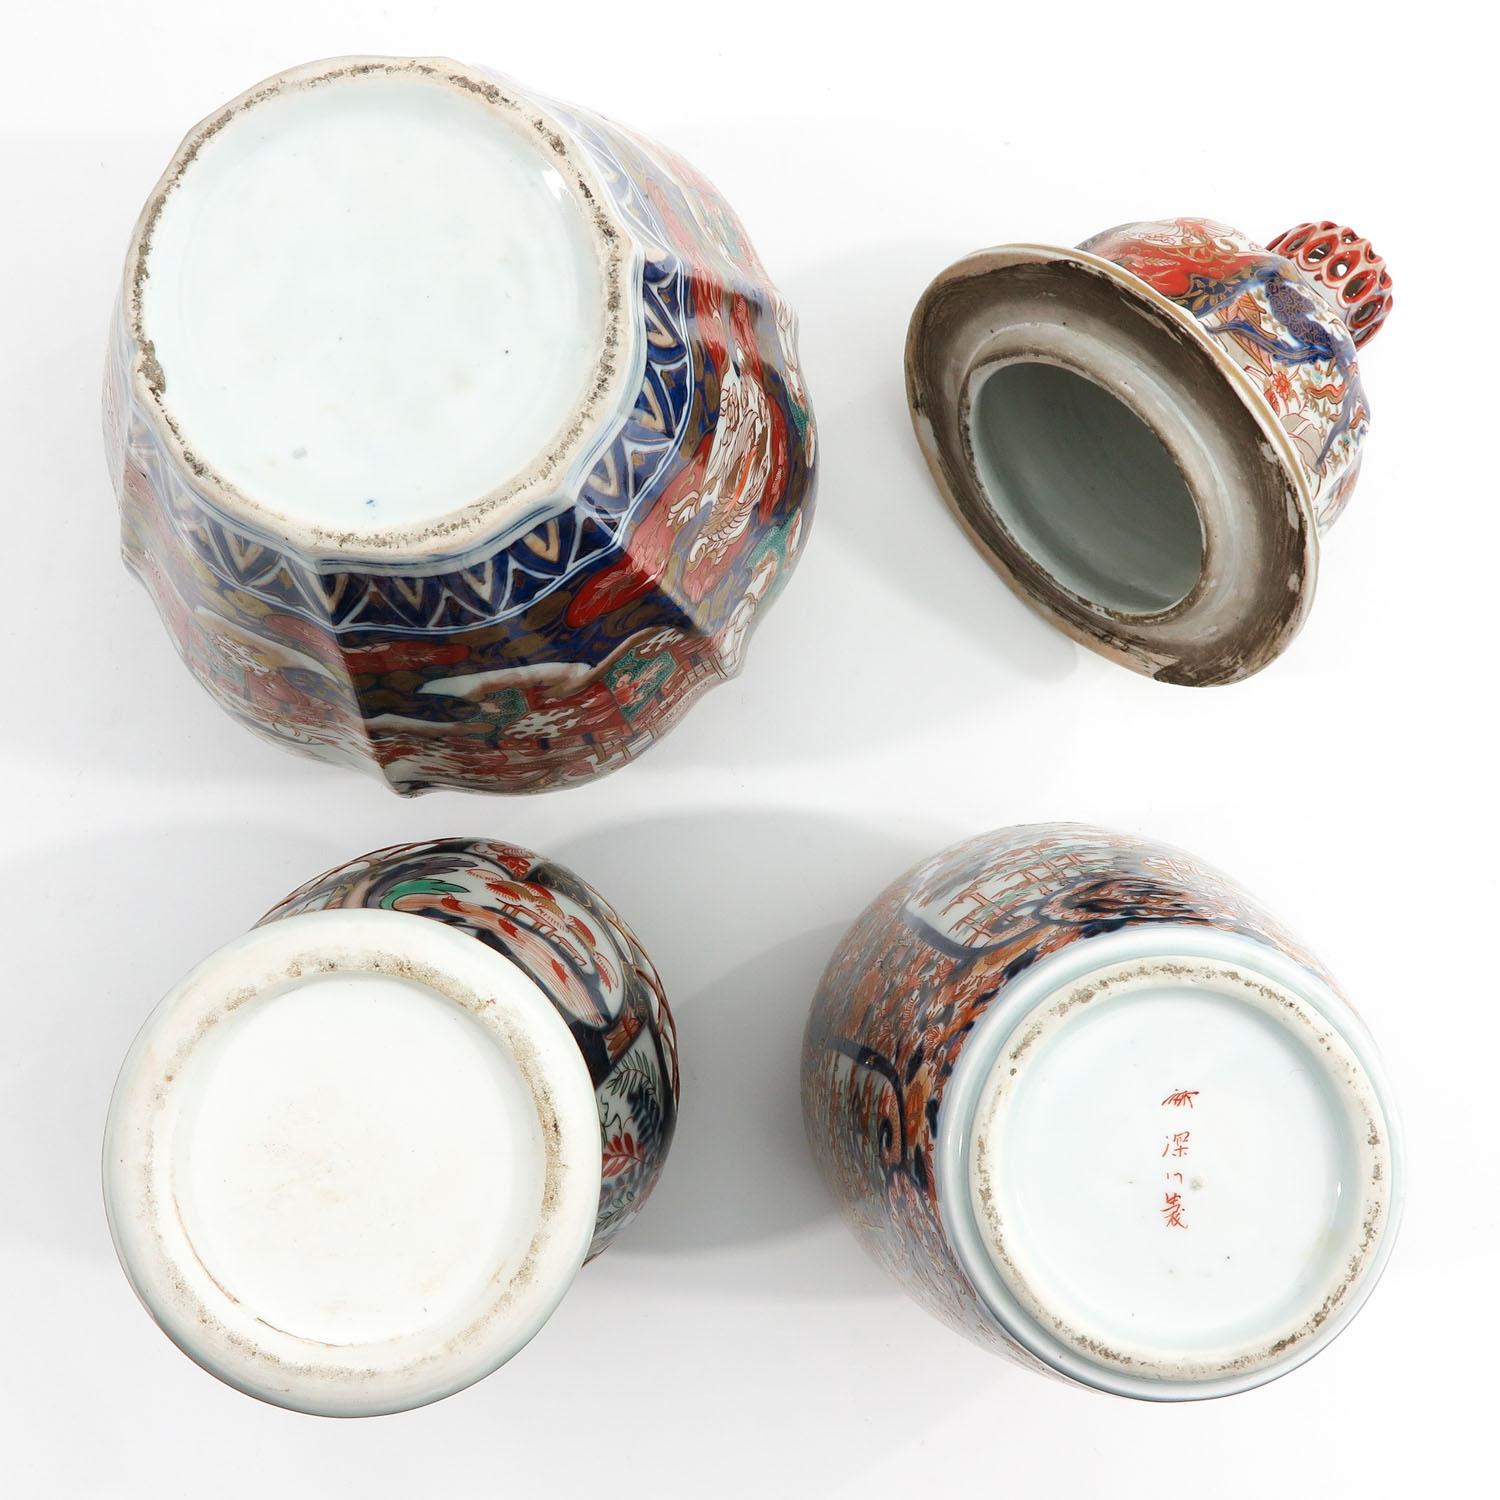 A Collection of 3 Imari Vases - Image 6 of 9